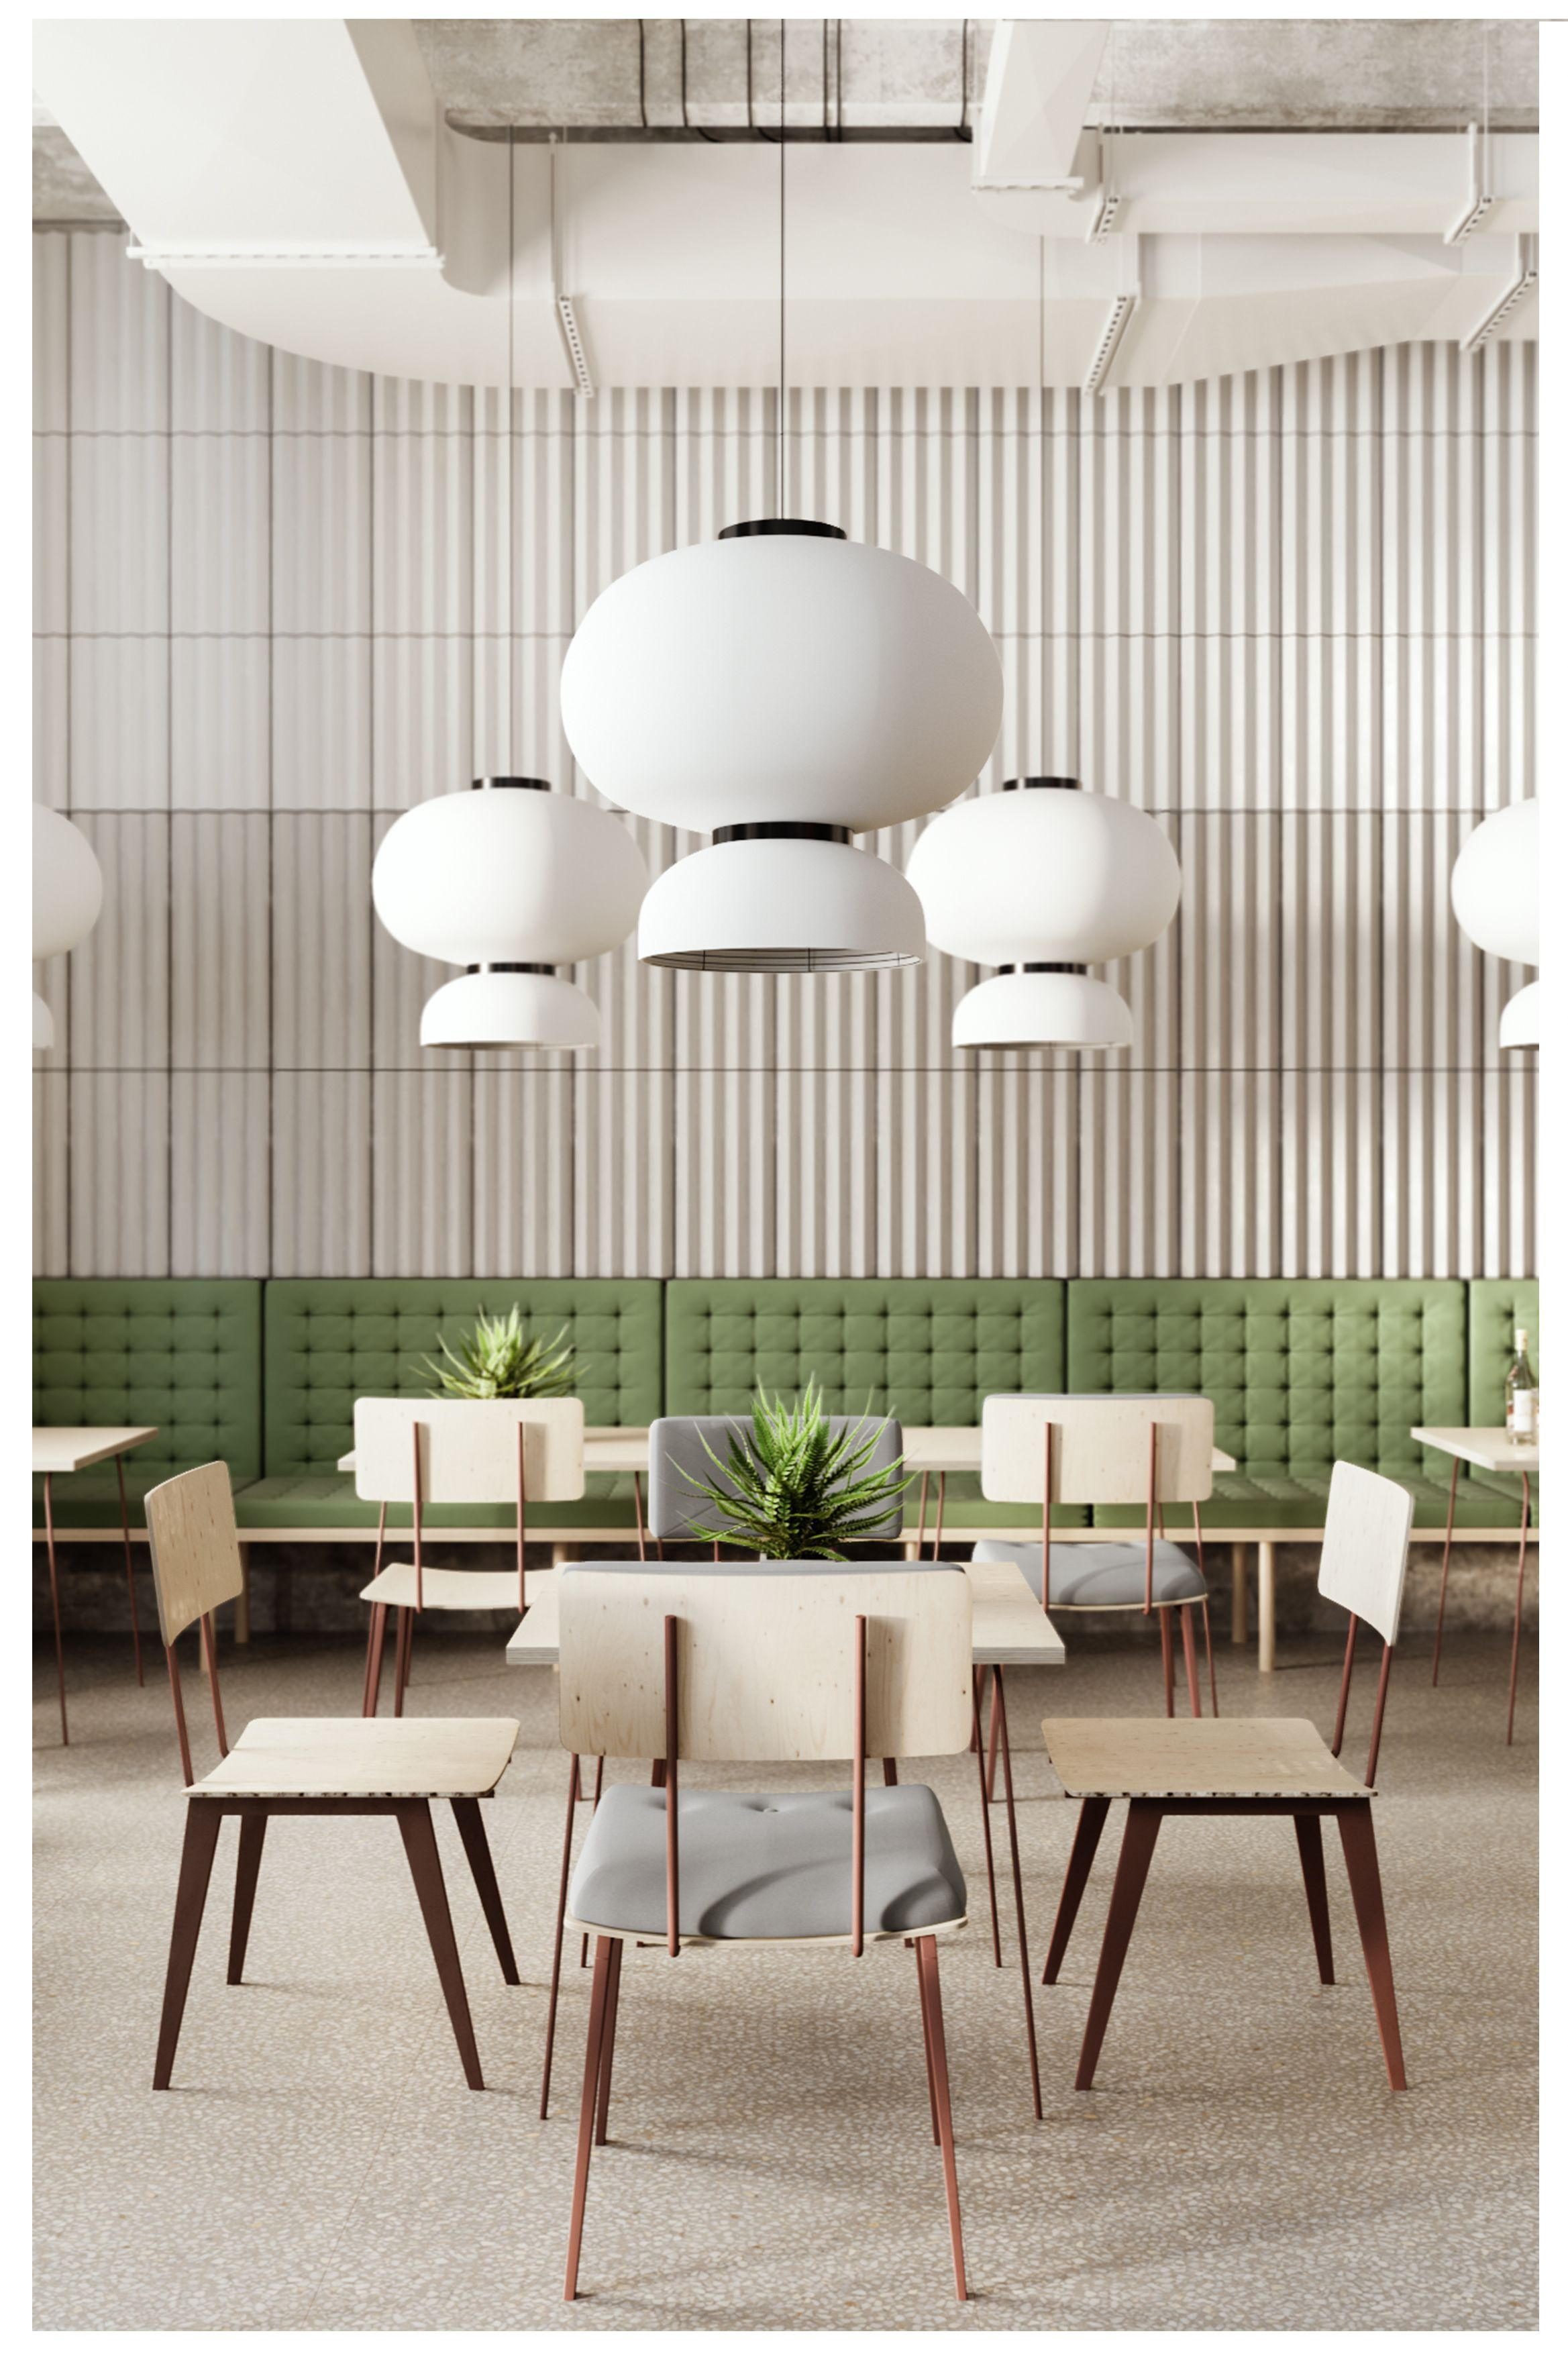 Mobilier Hotel Restaurant Pin By Sam Chan On Cafe Mobilier Restaurant Deco Restaurant